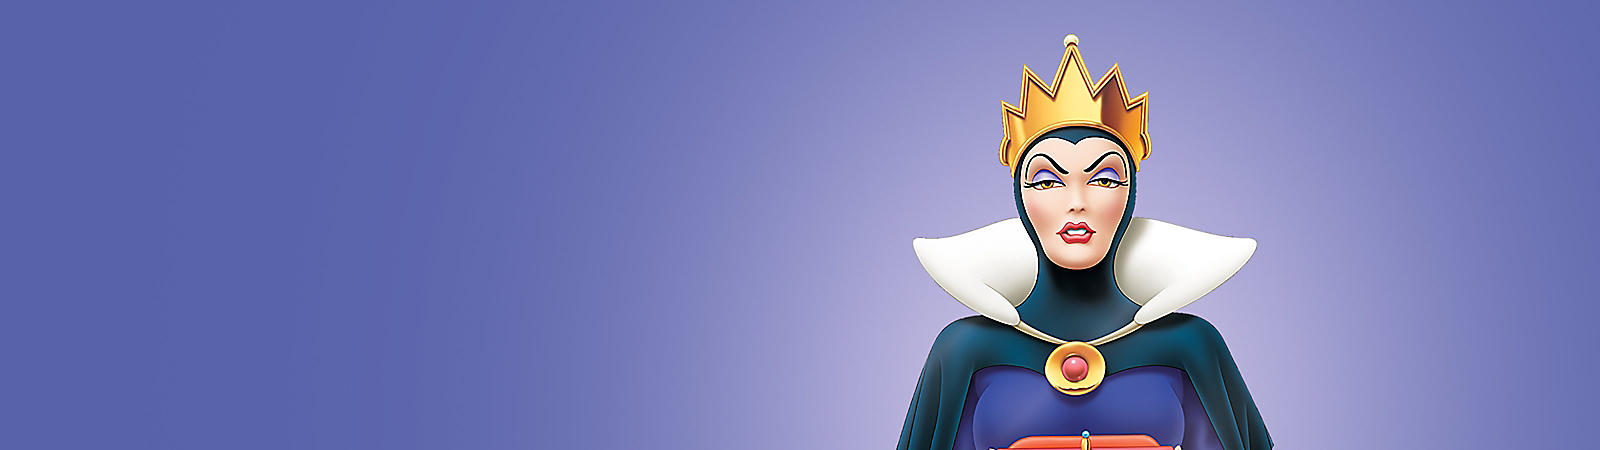 Background image of Evil Queen